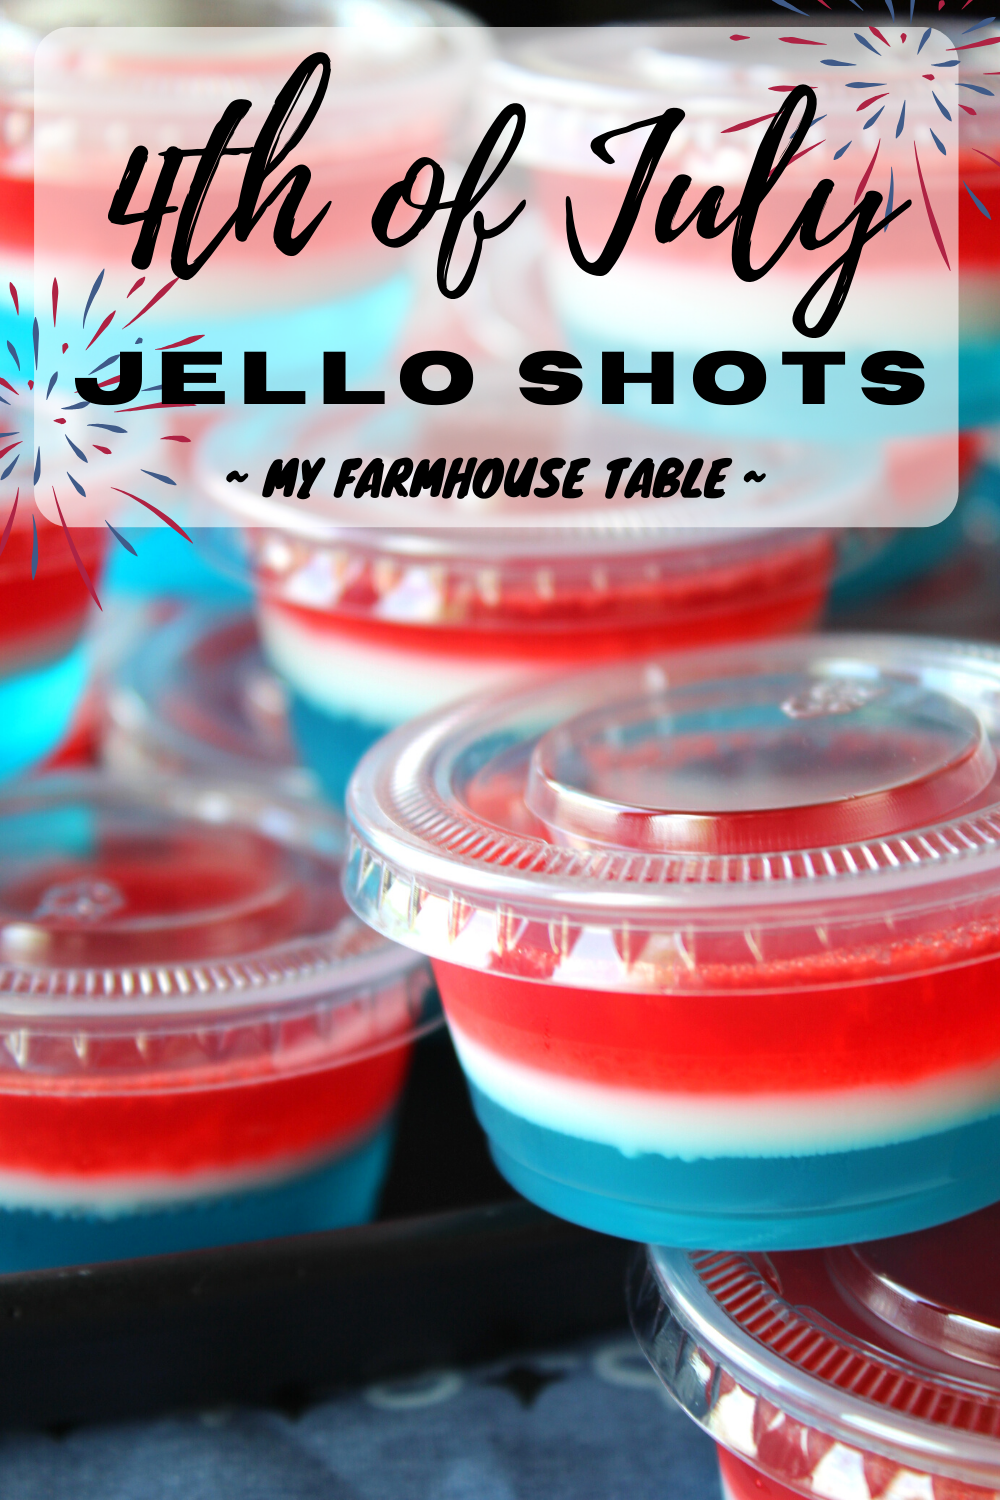 4th of July Jello Shots Party Drinks for Adults Red White and Blue Jello Shots Firework Shots Bomb Pop Jello Shots Patriotic Jello Shots Easy and Delicious Jello Shot Recipe My Farmhouse Table